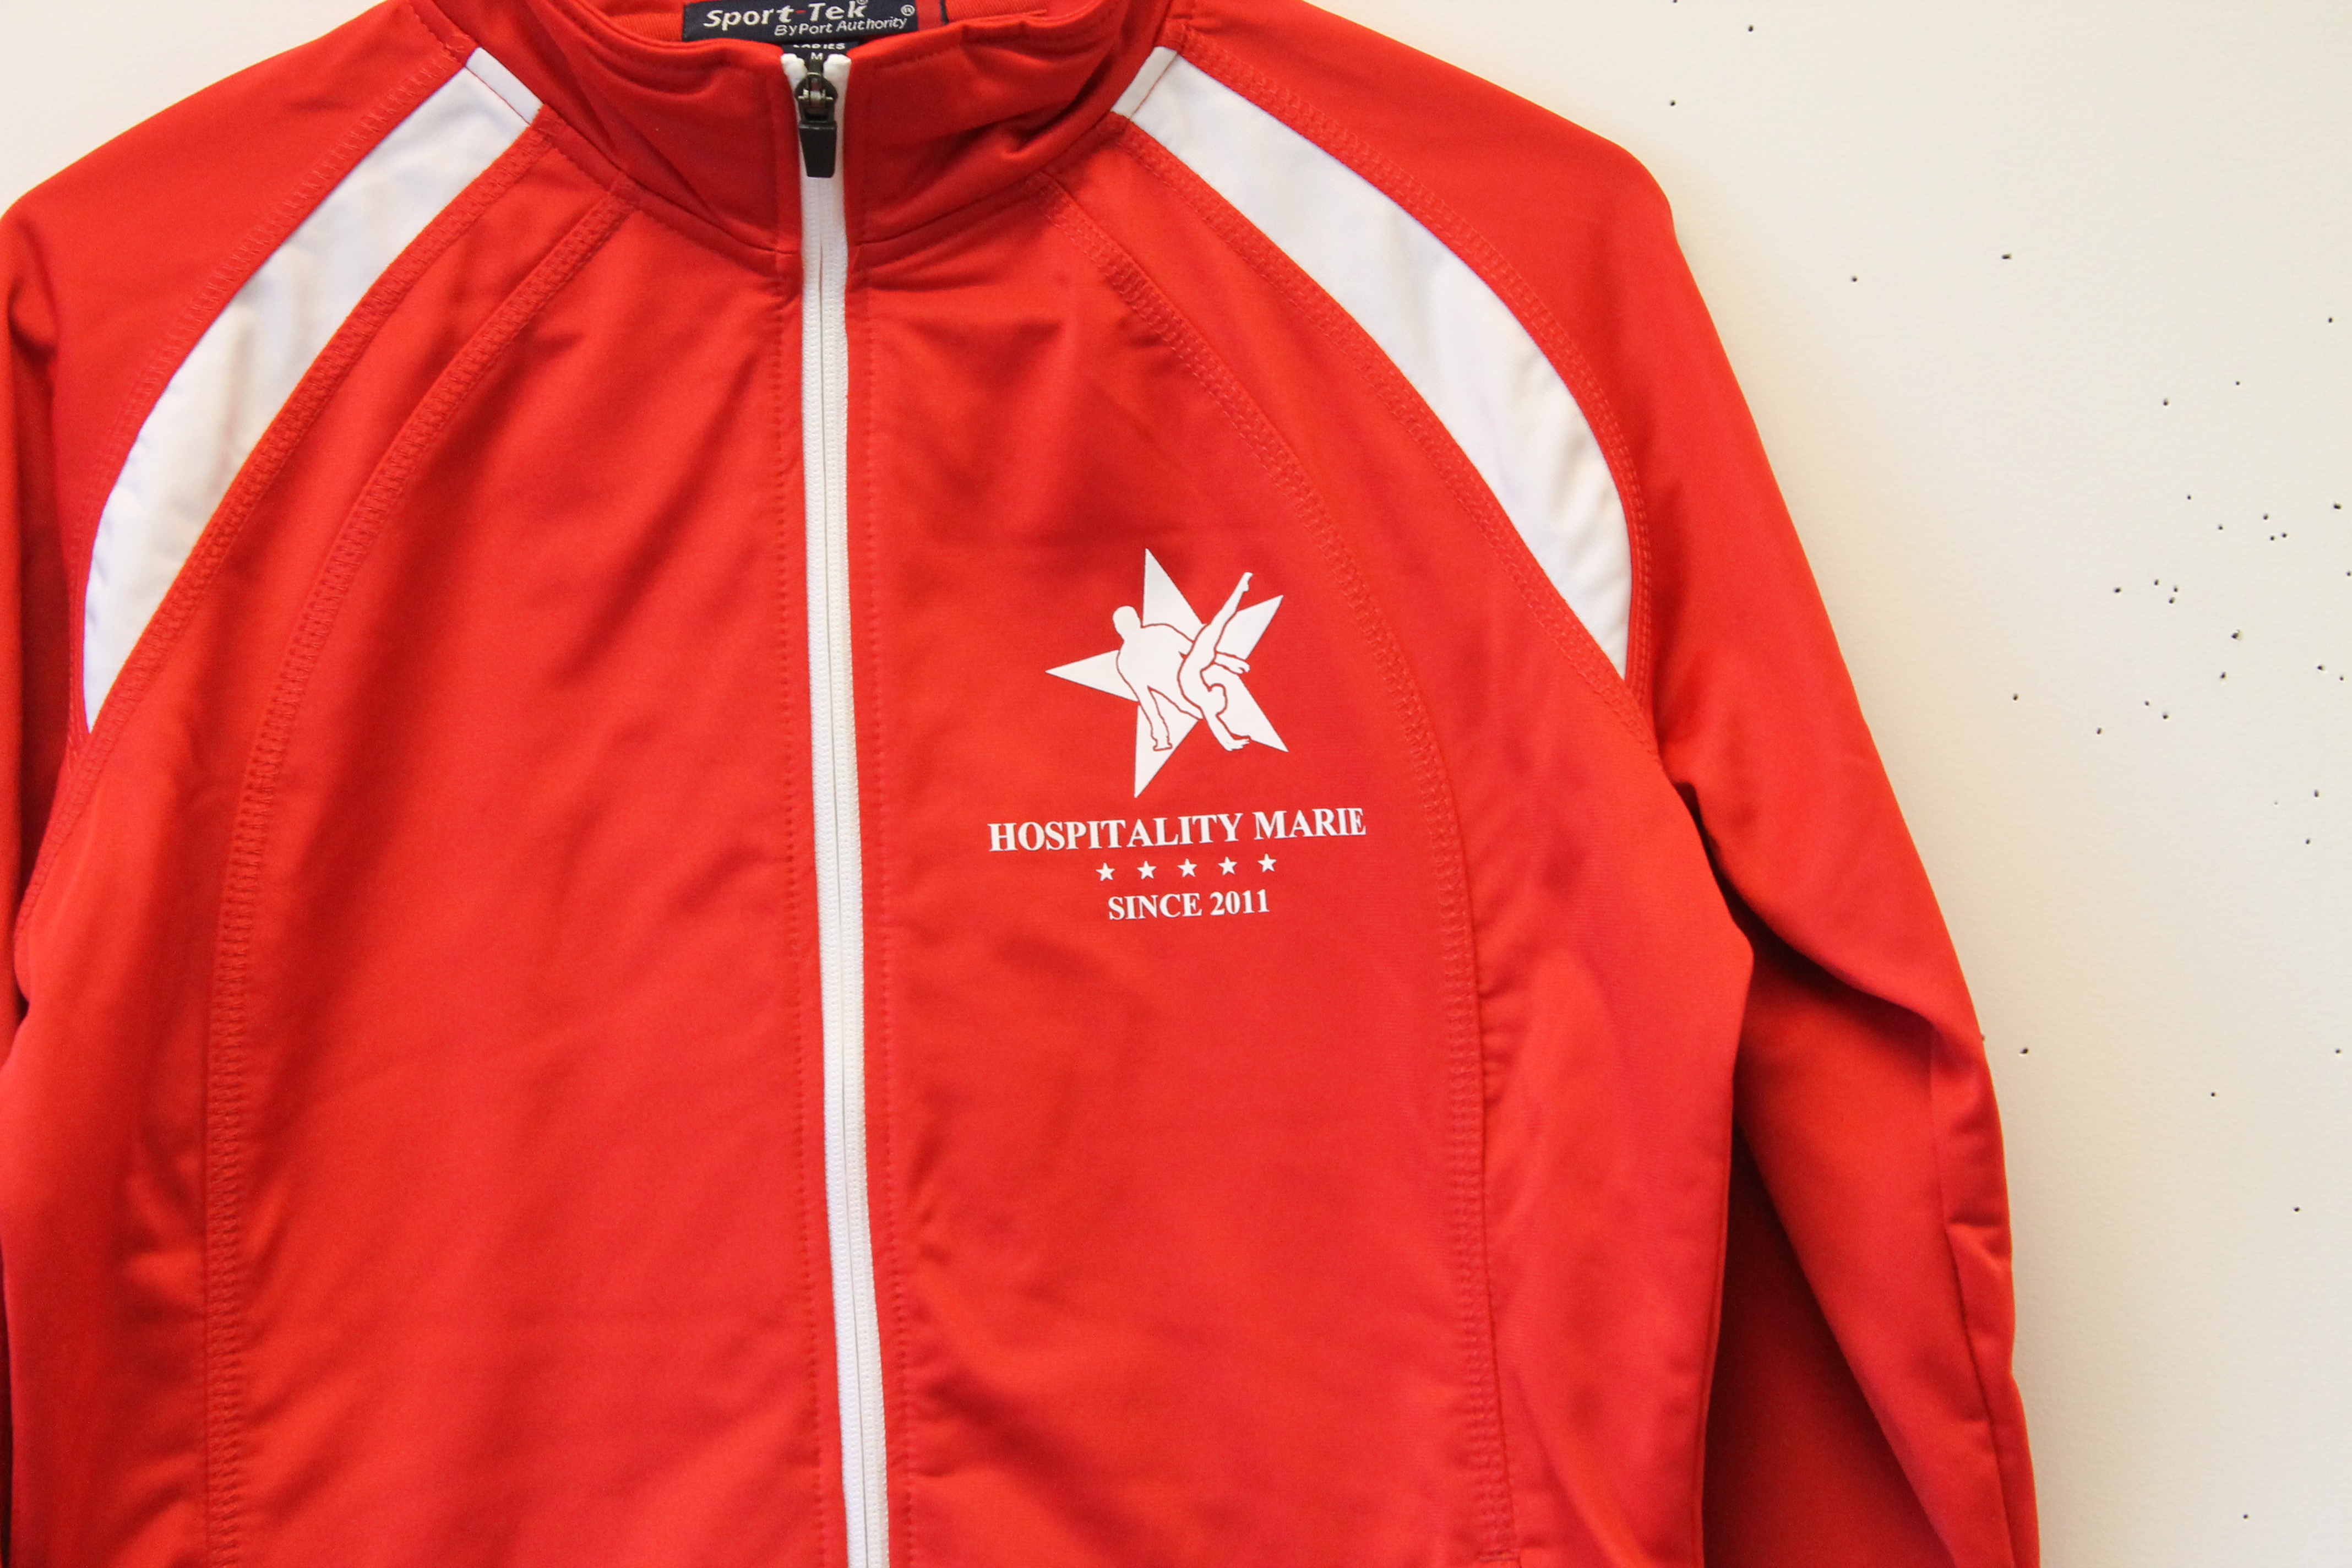 athletic printing for hospitality marie by Impressionz Printing